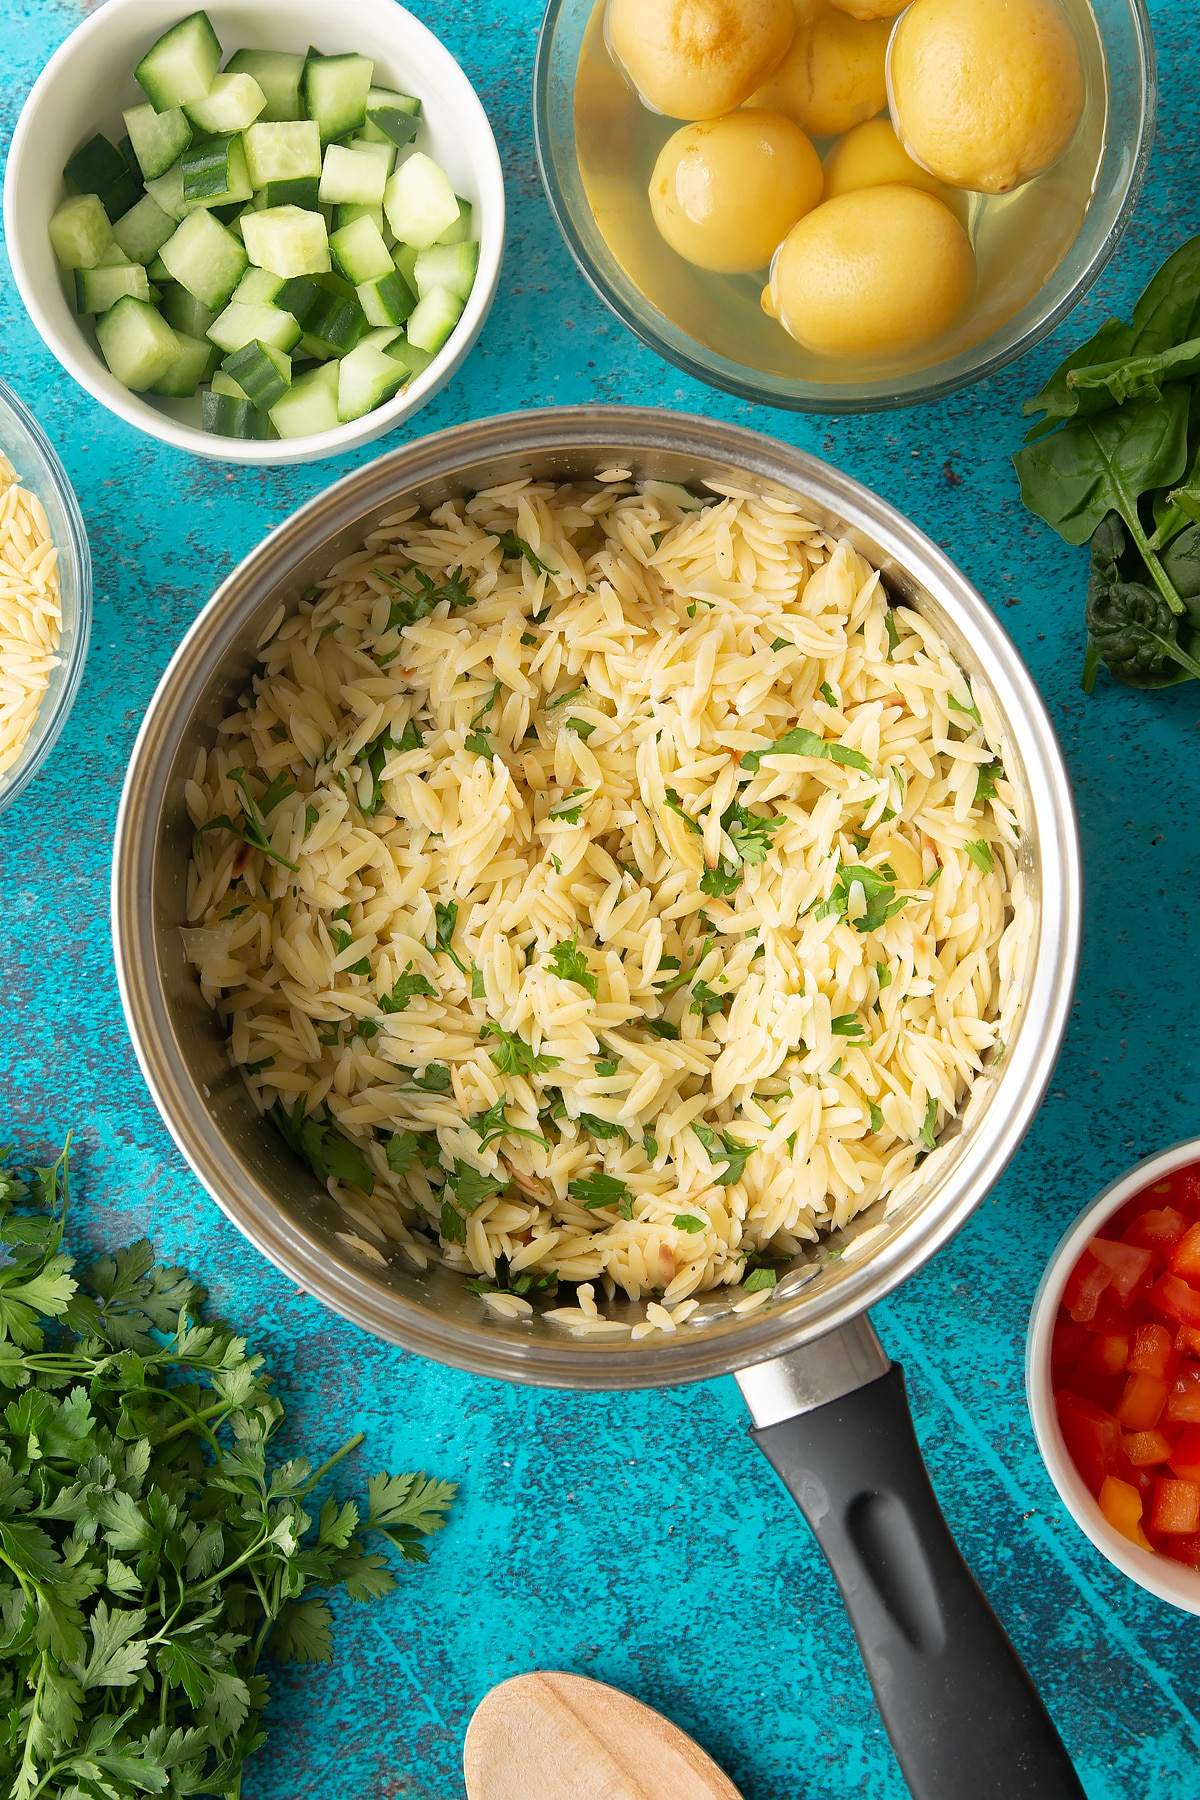 Cooked orzo in a saucepan mixed with preserved lemons, parsley, salt and pepper.